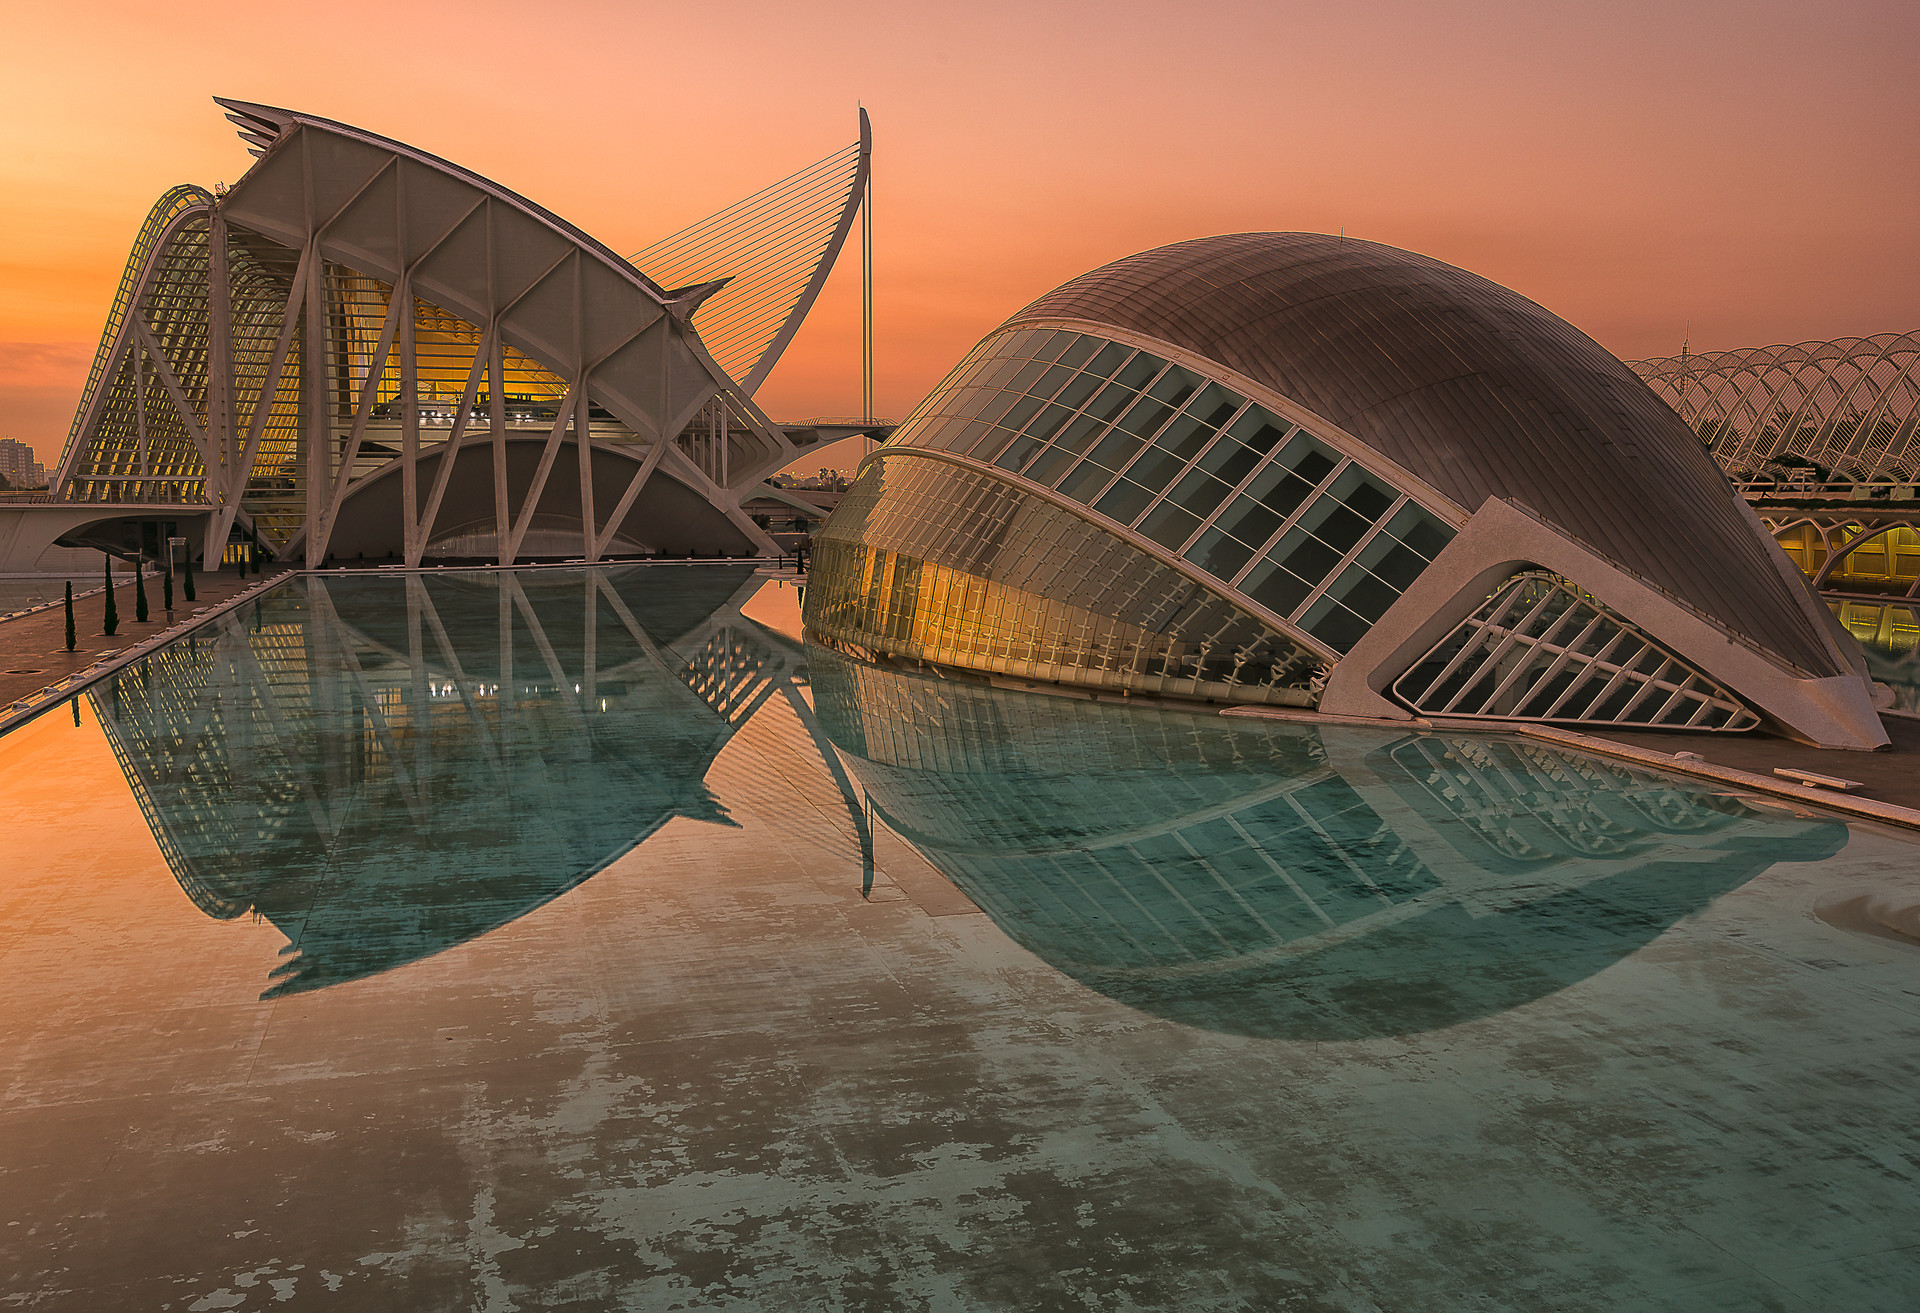 City of Arts and Sciences,Valencia